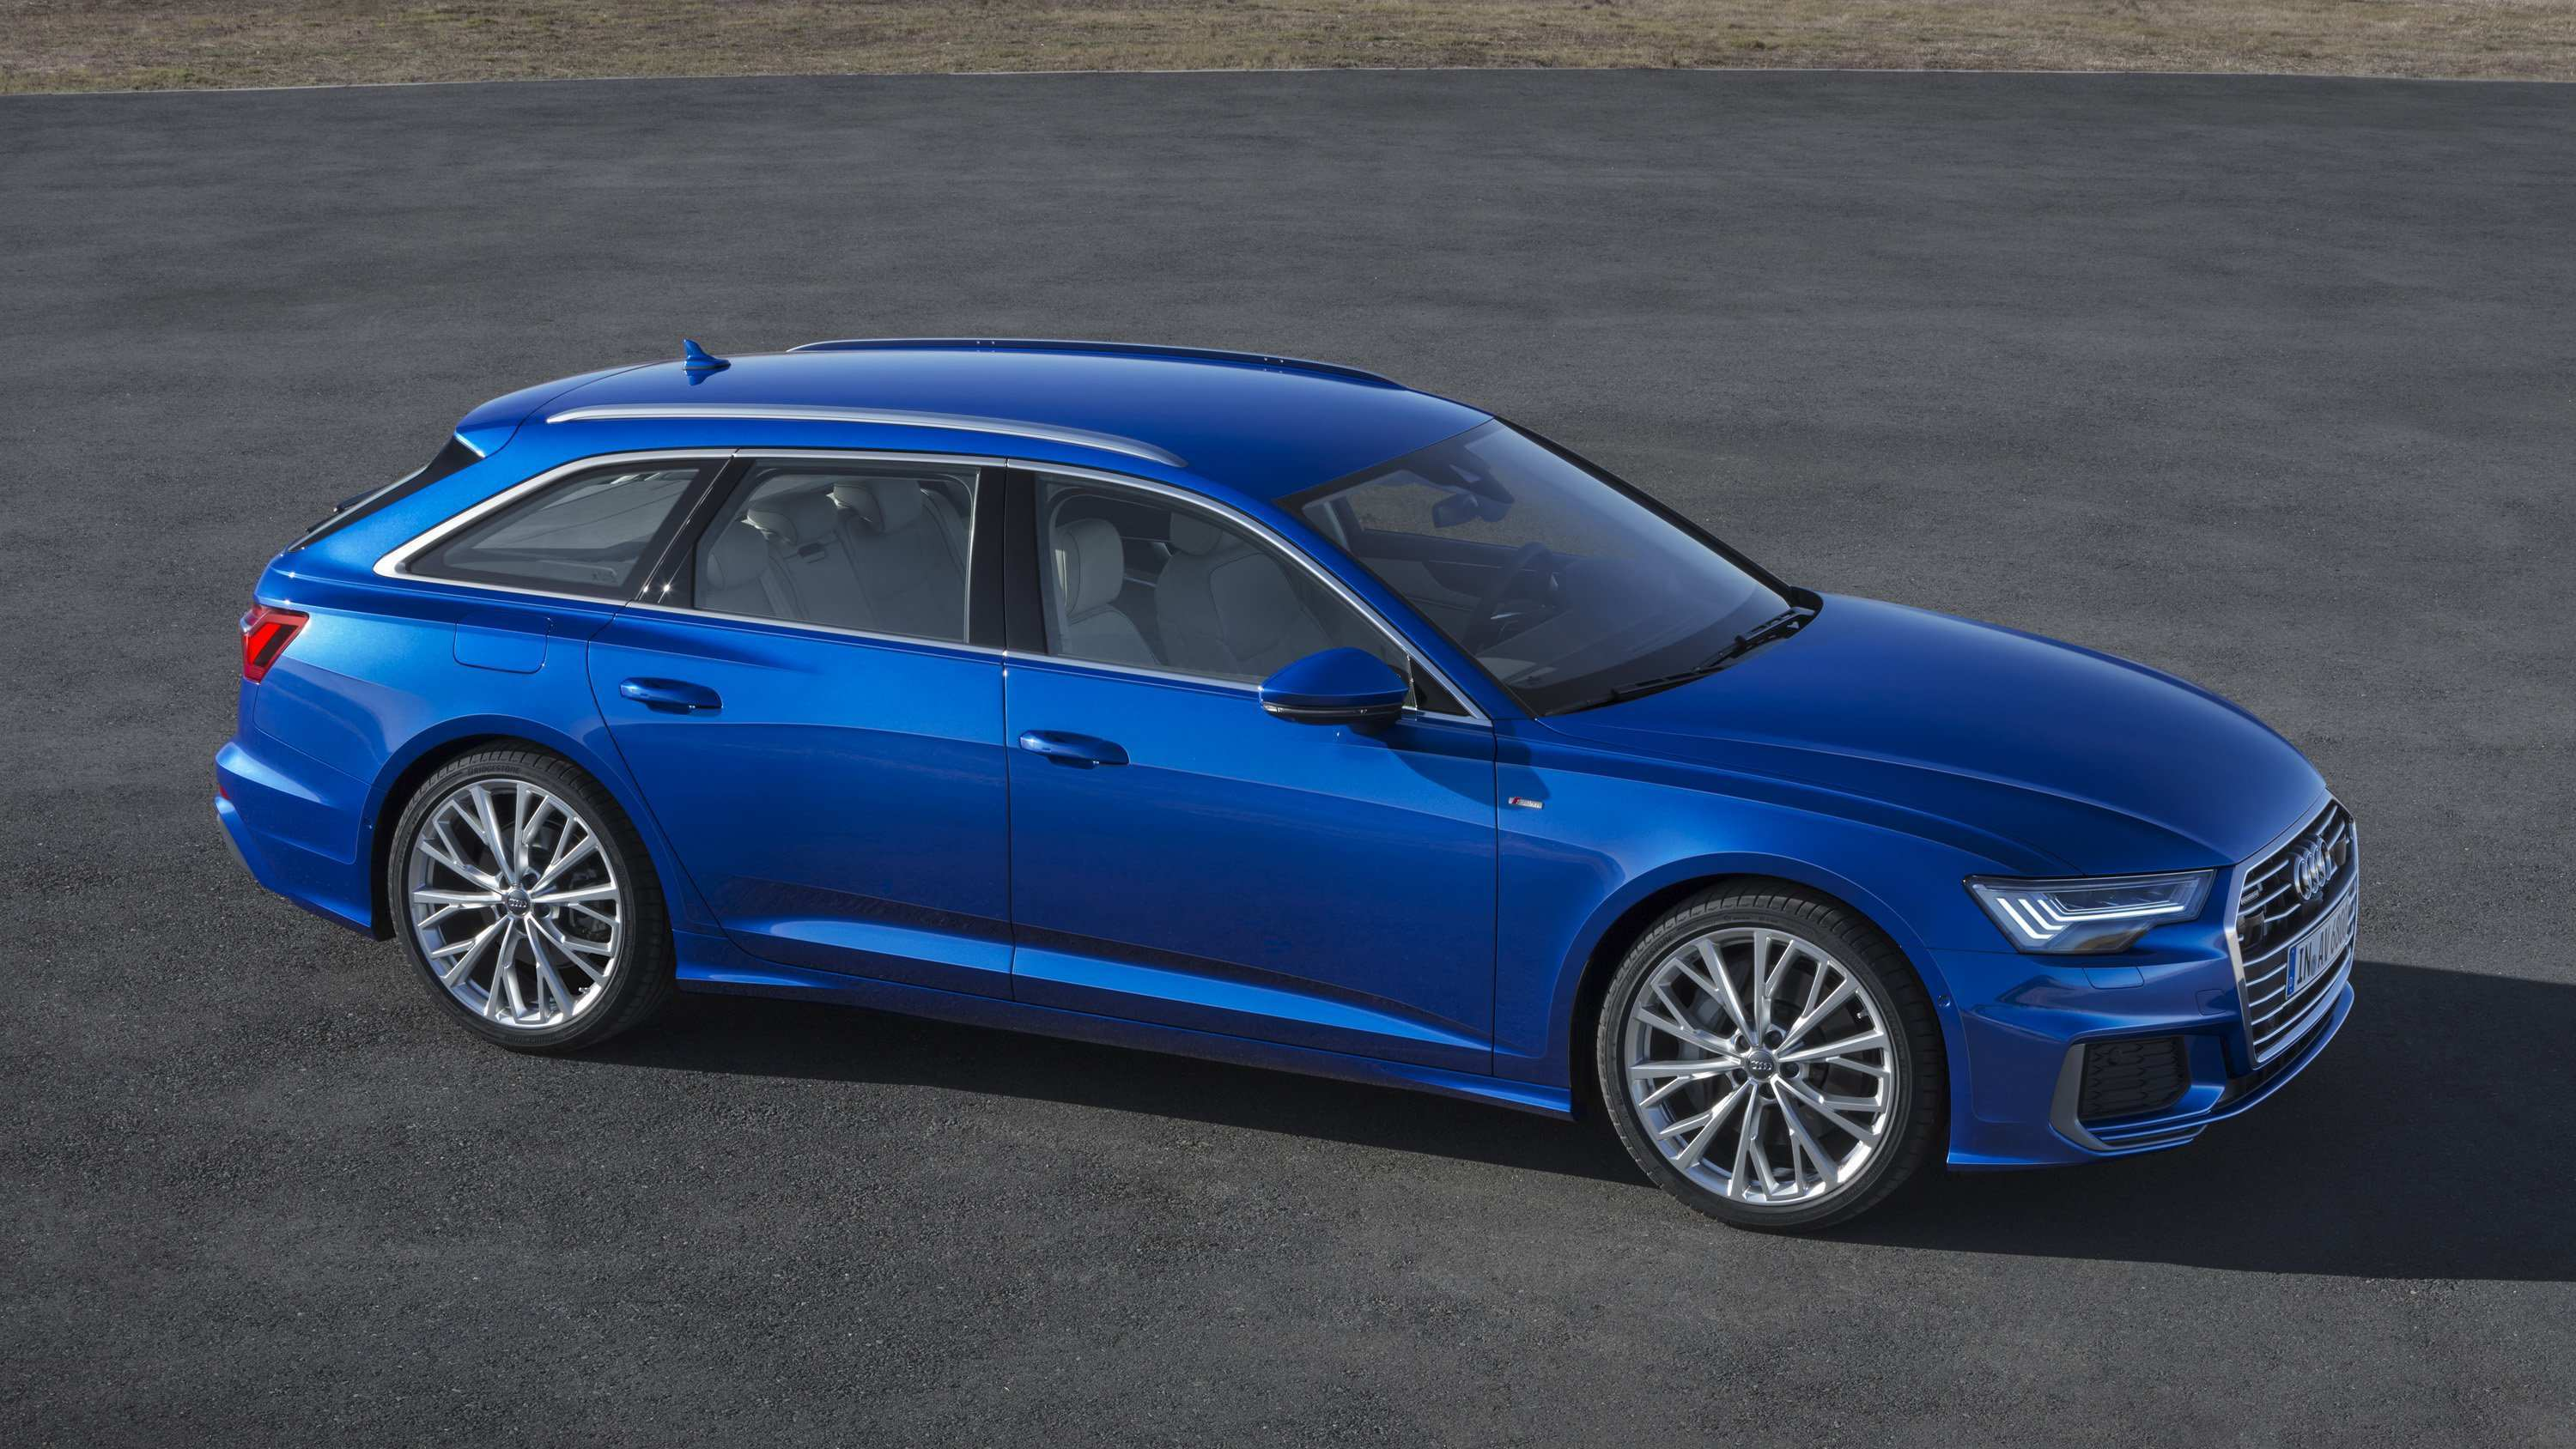 55 New 2019 Audi Q6 Release Date And Concept